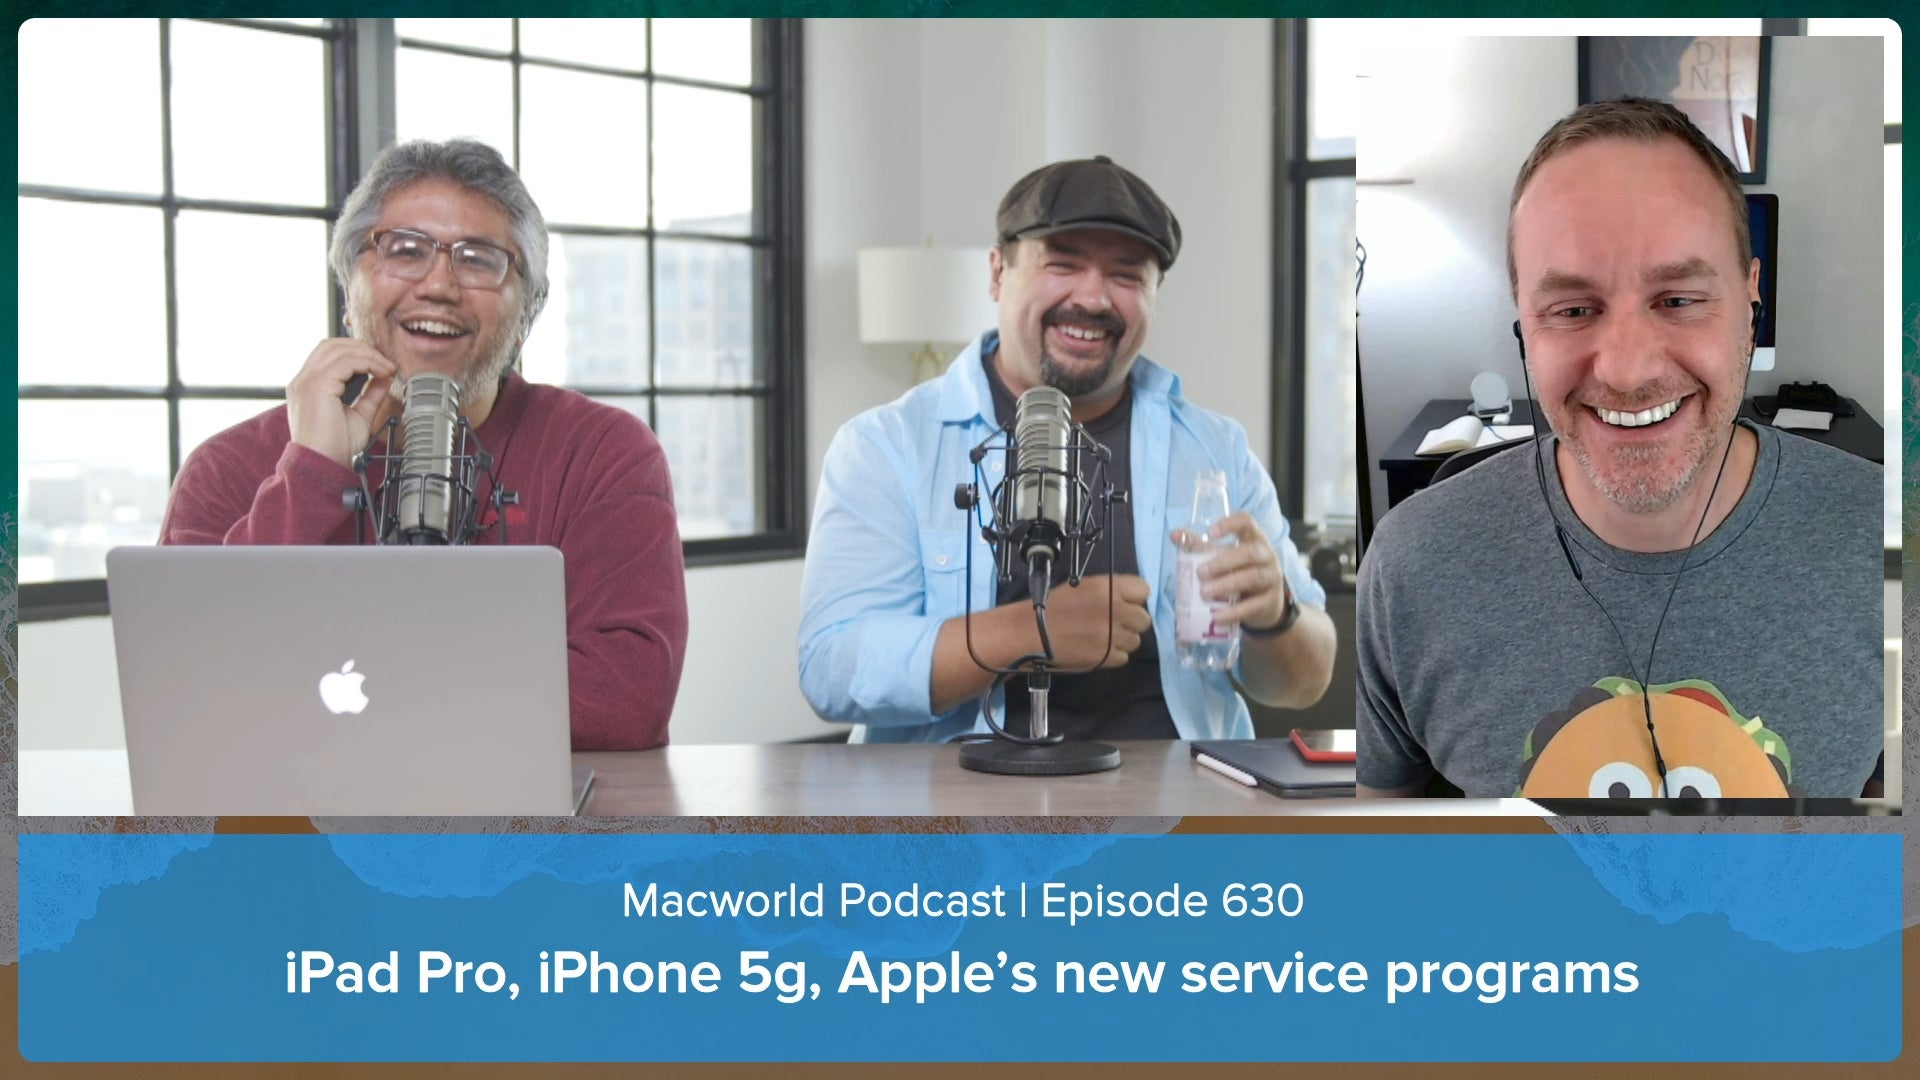 Macworld Podcast 630